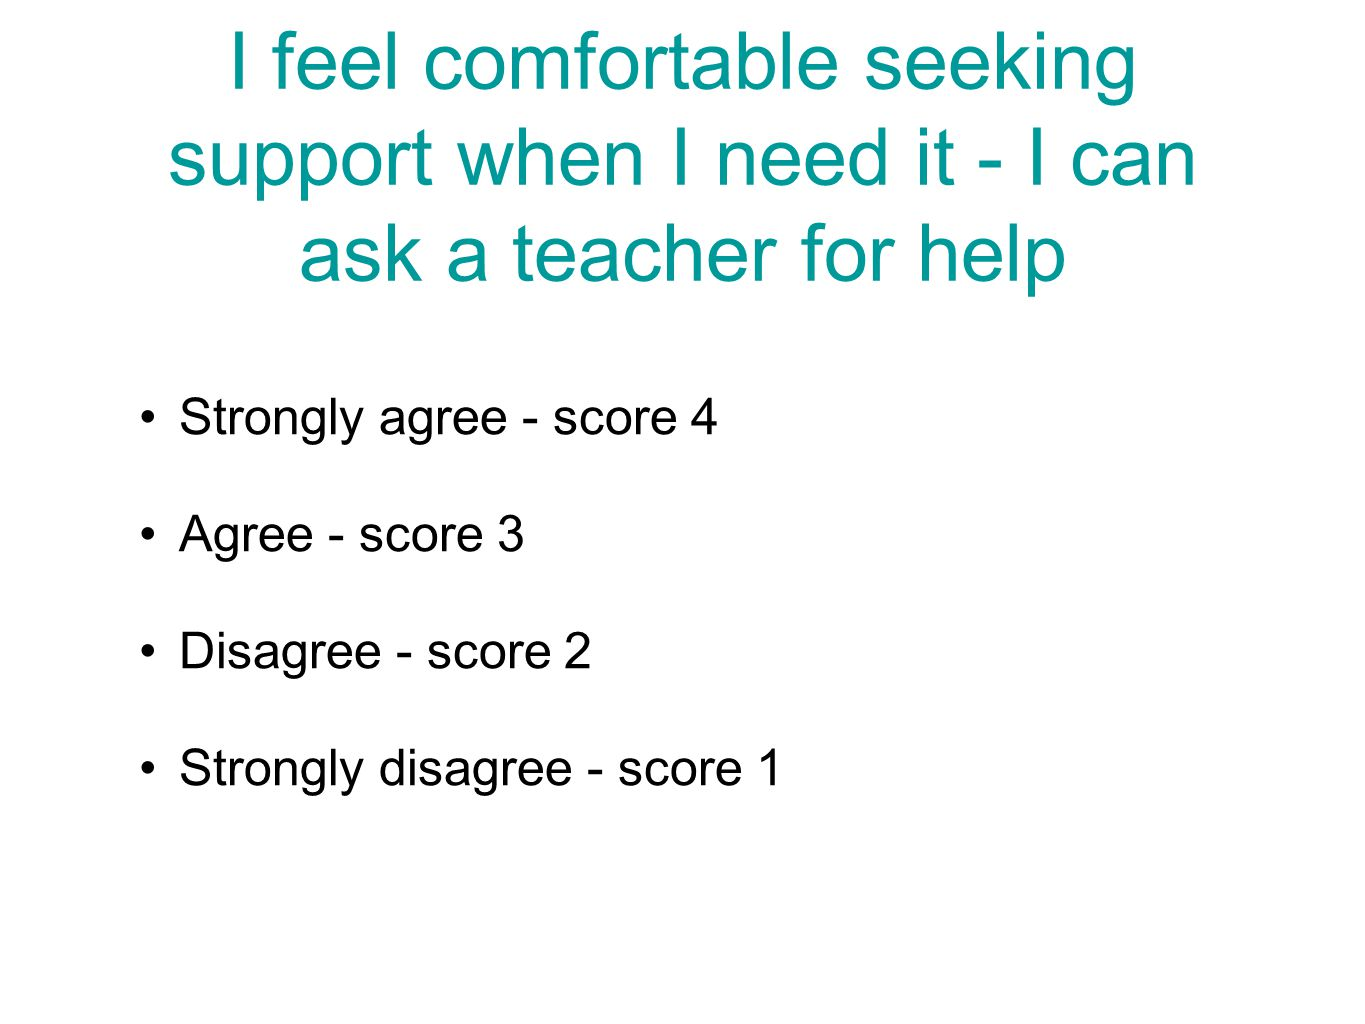 I feel comfortable seeking support when I need it - I can ask a teacher for help Strongly agree - score 4 Agree - score 3 Disagree - score 2 Strongly disagree - score 1